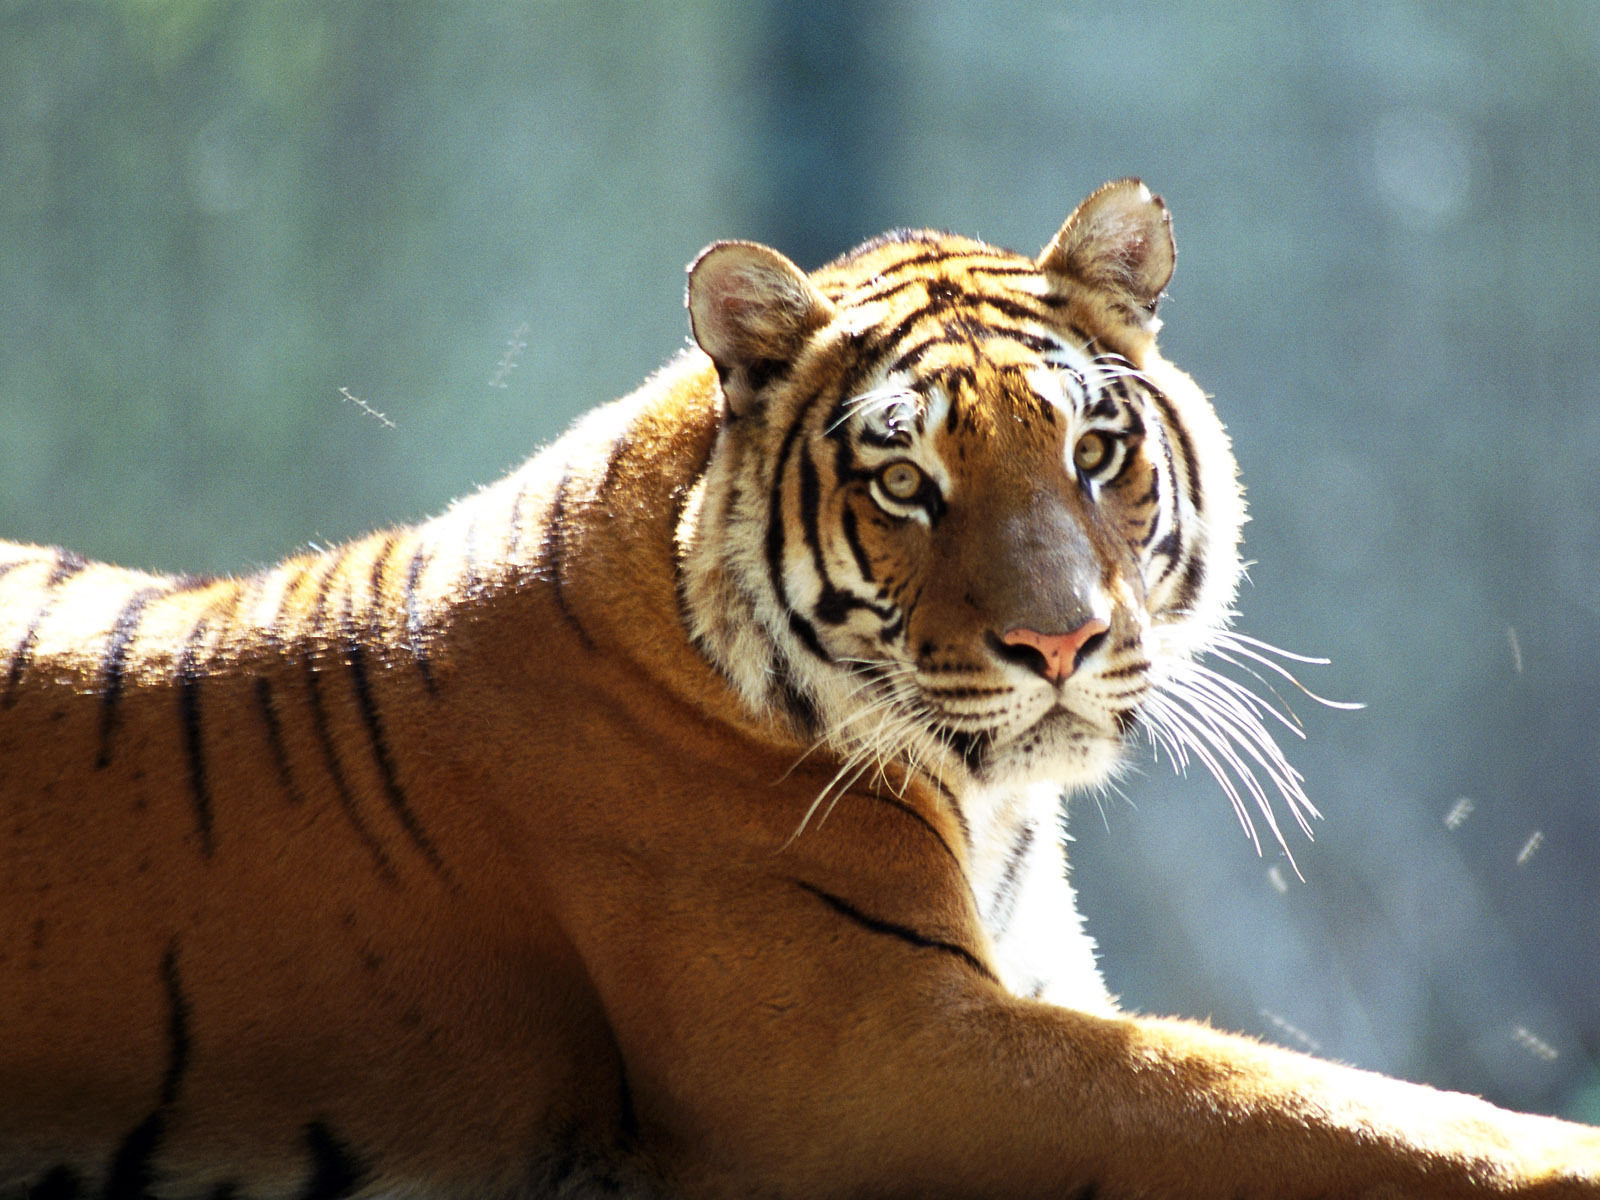 14968 download wallpaper Animals, Tigers screensavers and pictures for free